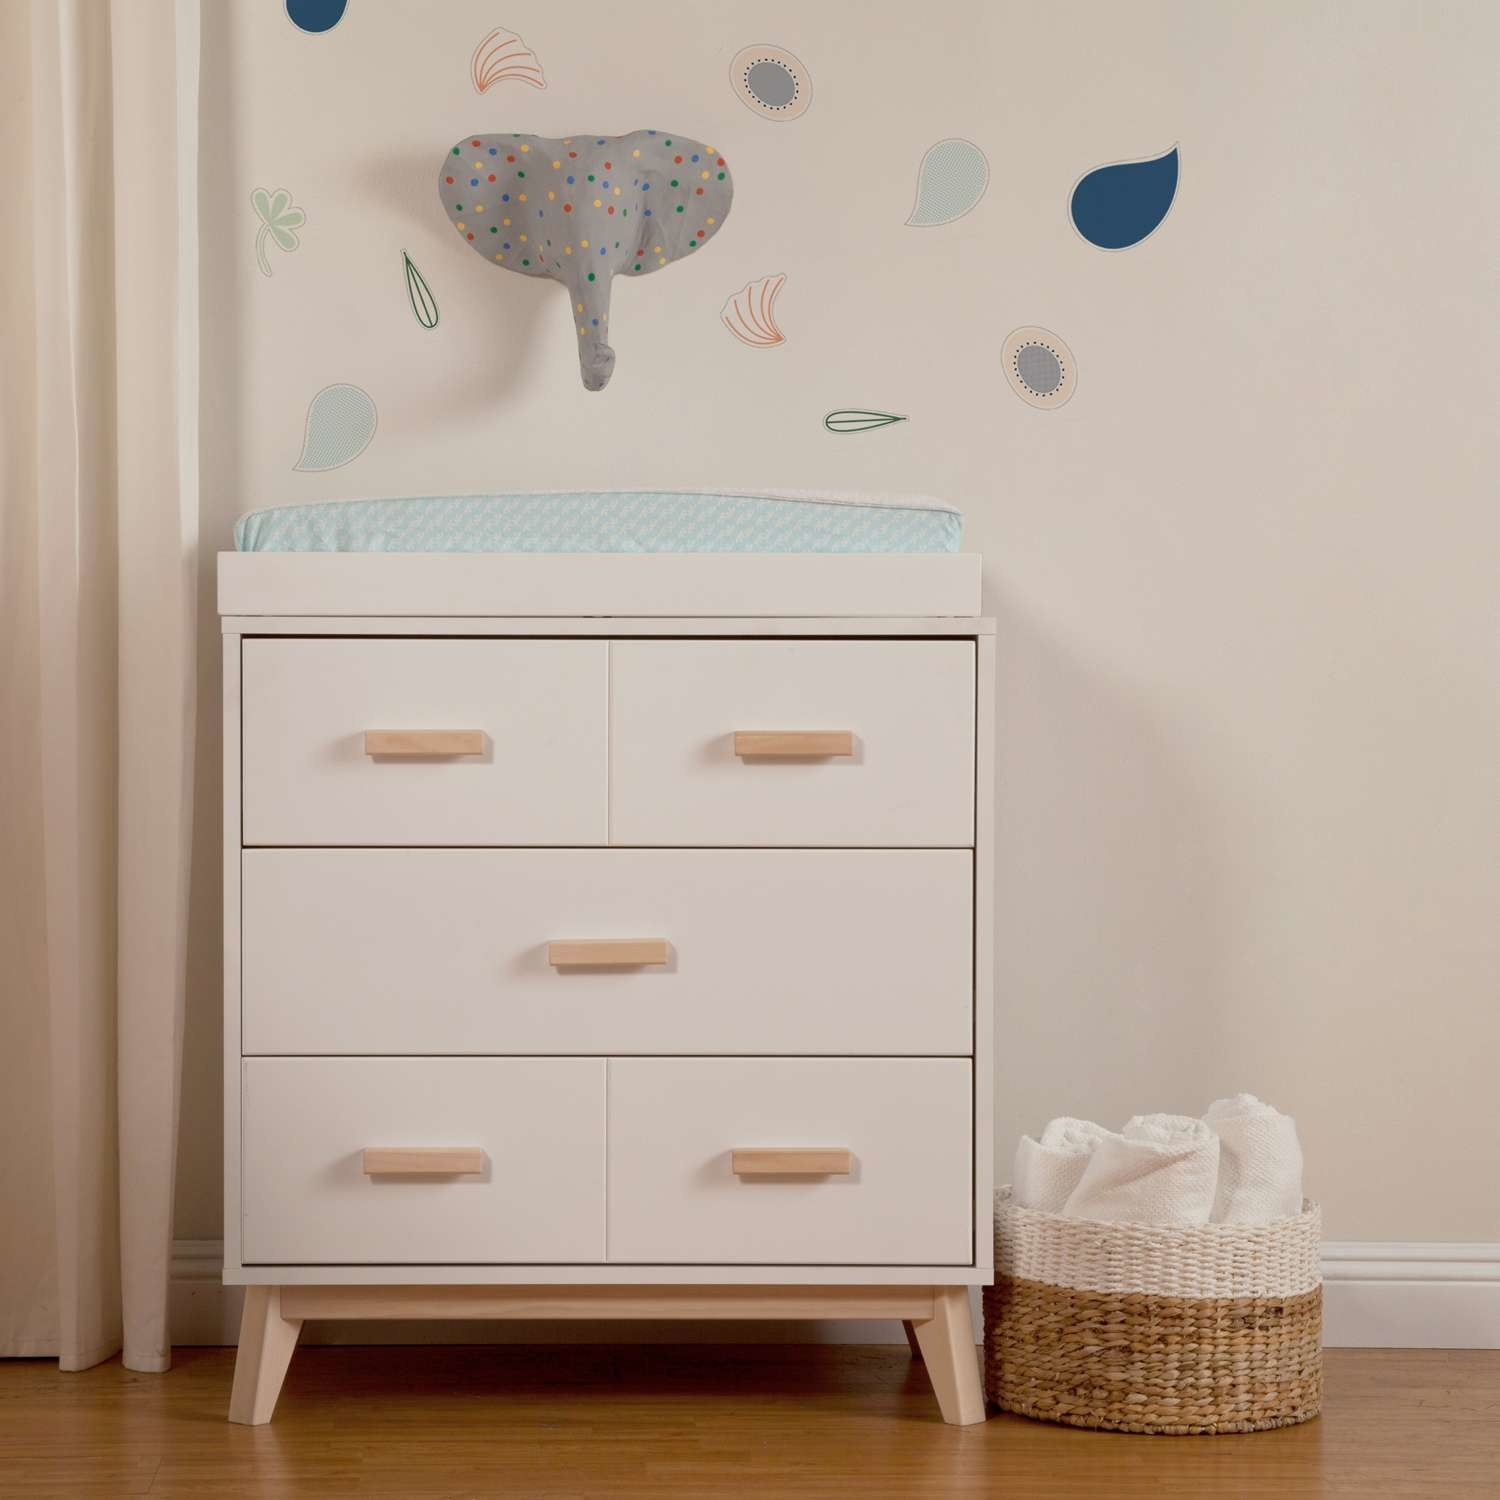 magnificent matching wht home white set fancy nightstand and mirror inside dressers dresser goods with epf